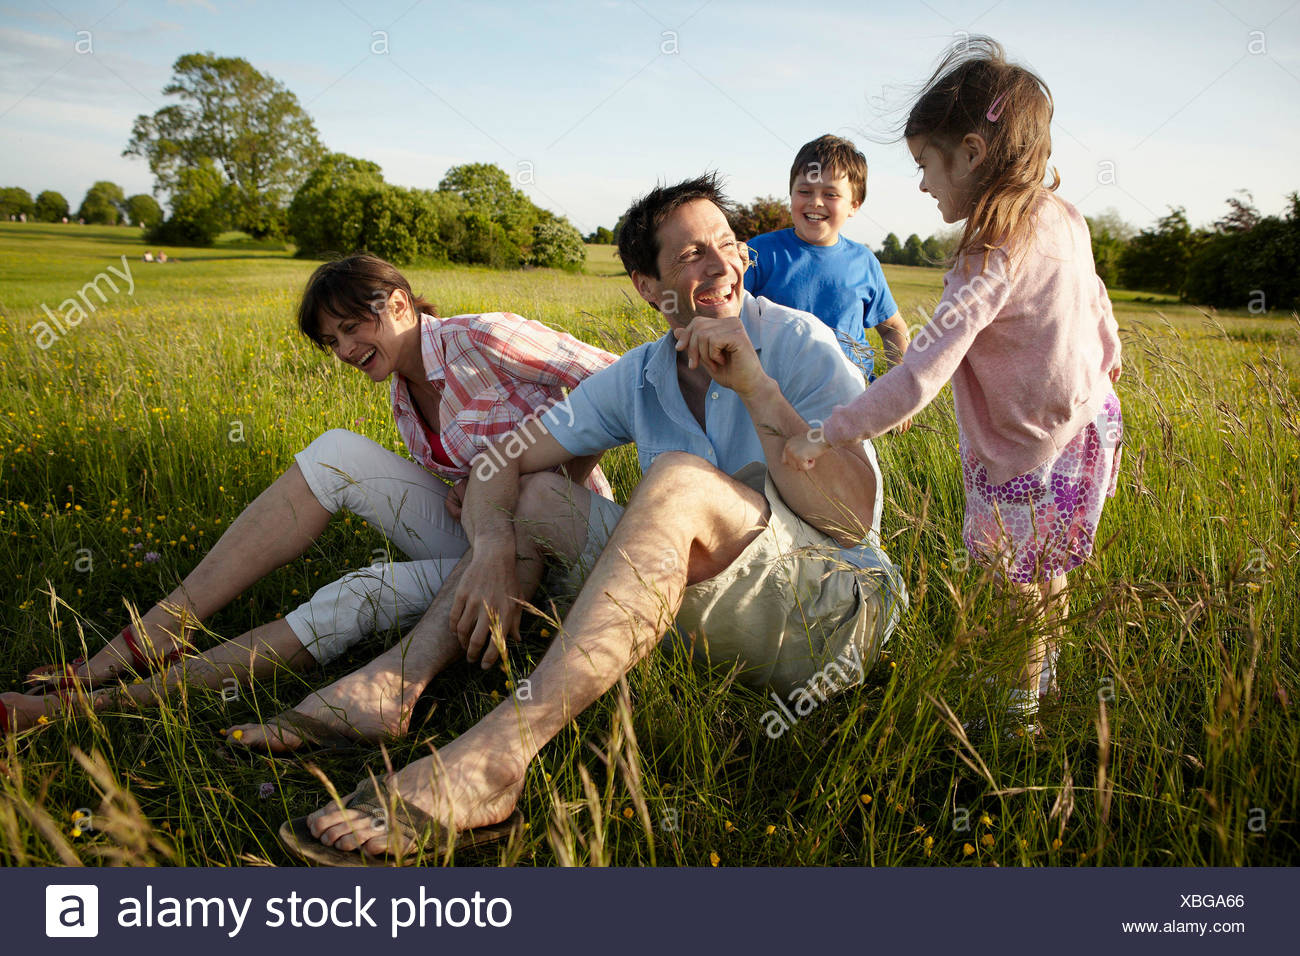 A family, two parents and two children outdoors on a summer evening. - Stock Image